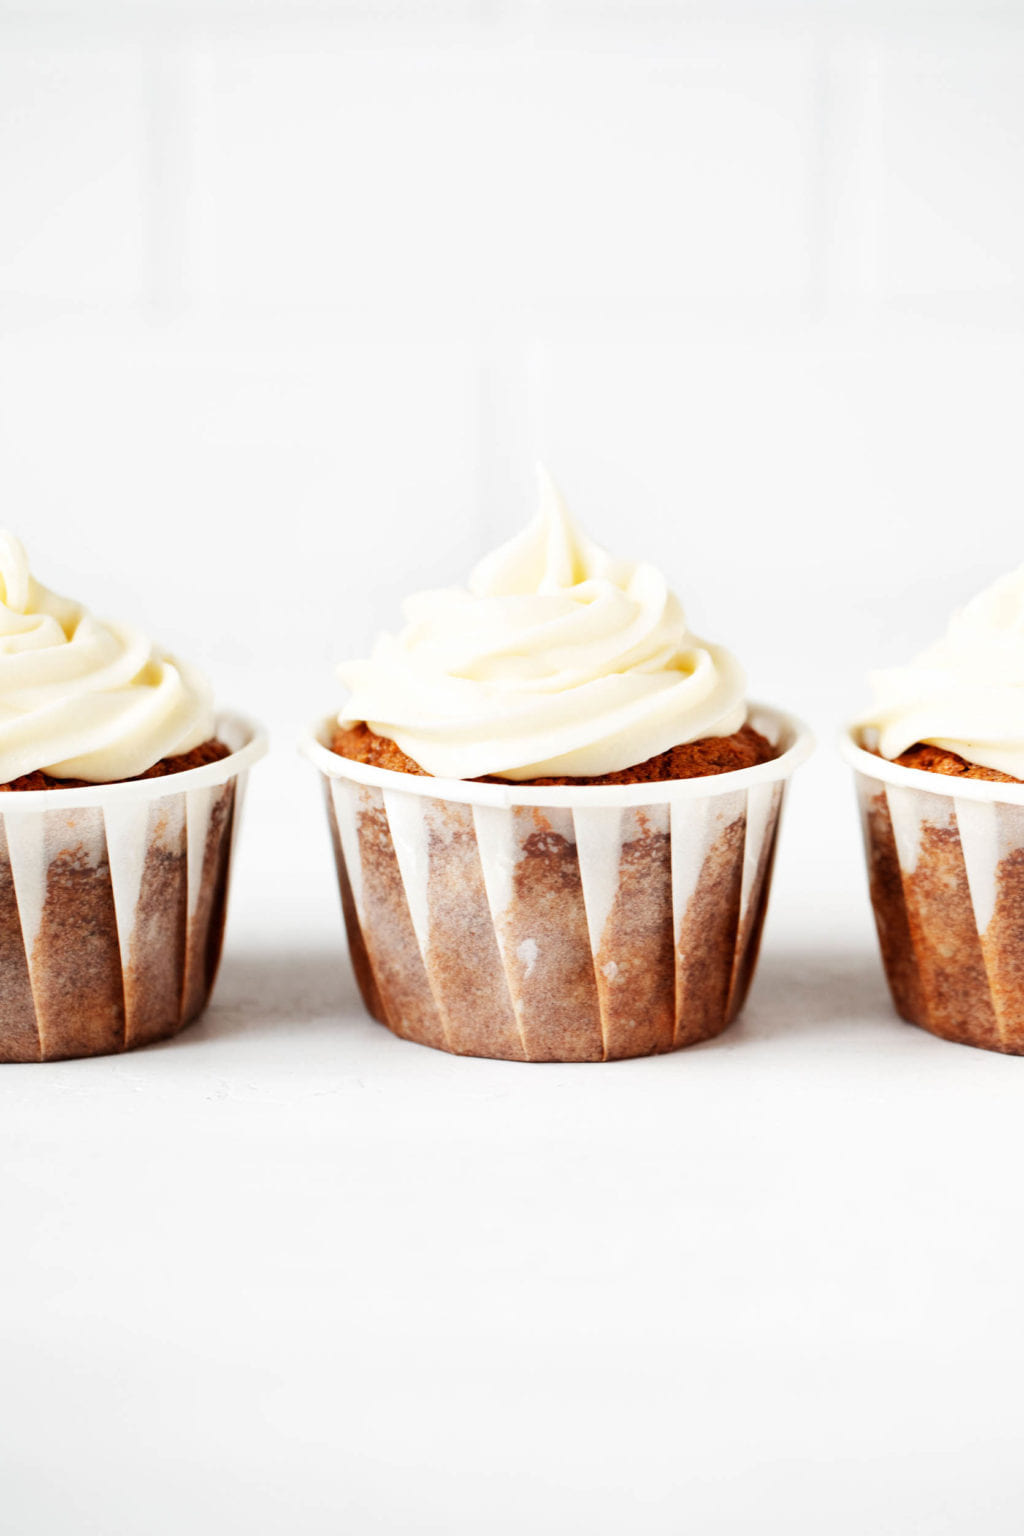 Three vegan cupcakes made with carrot and cream cheese frosting are neatly arranged in front of the white brick surface.